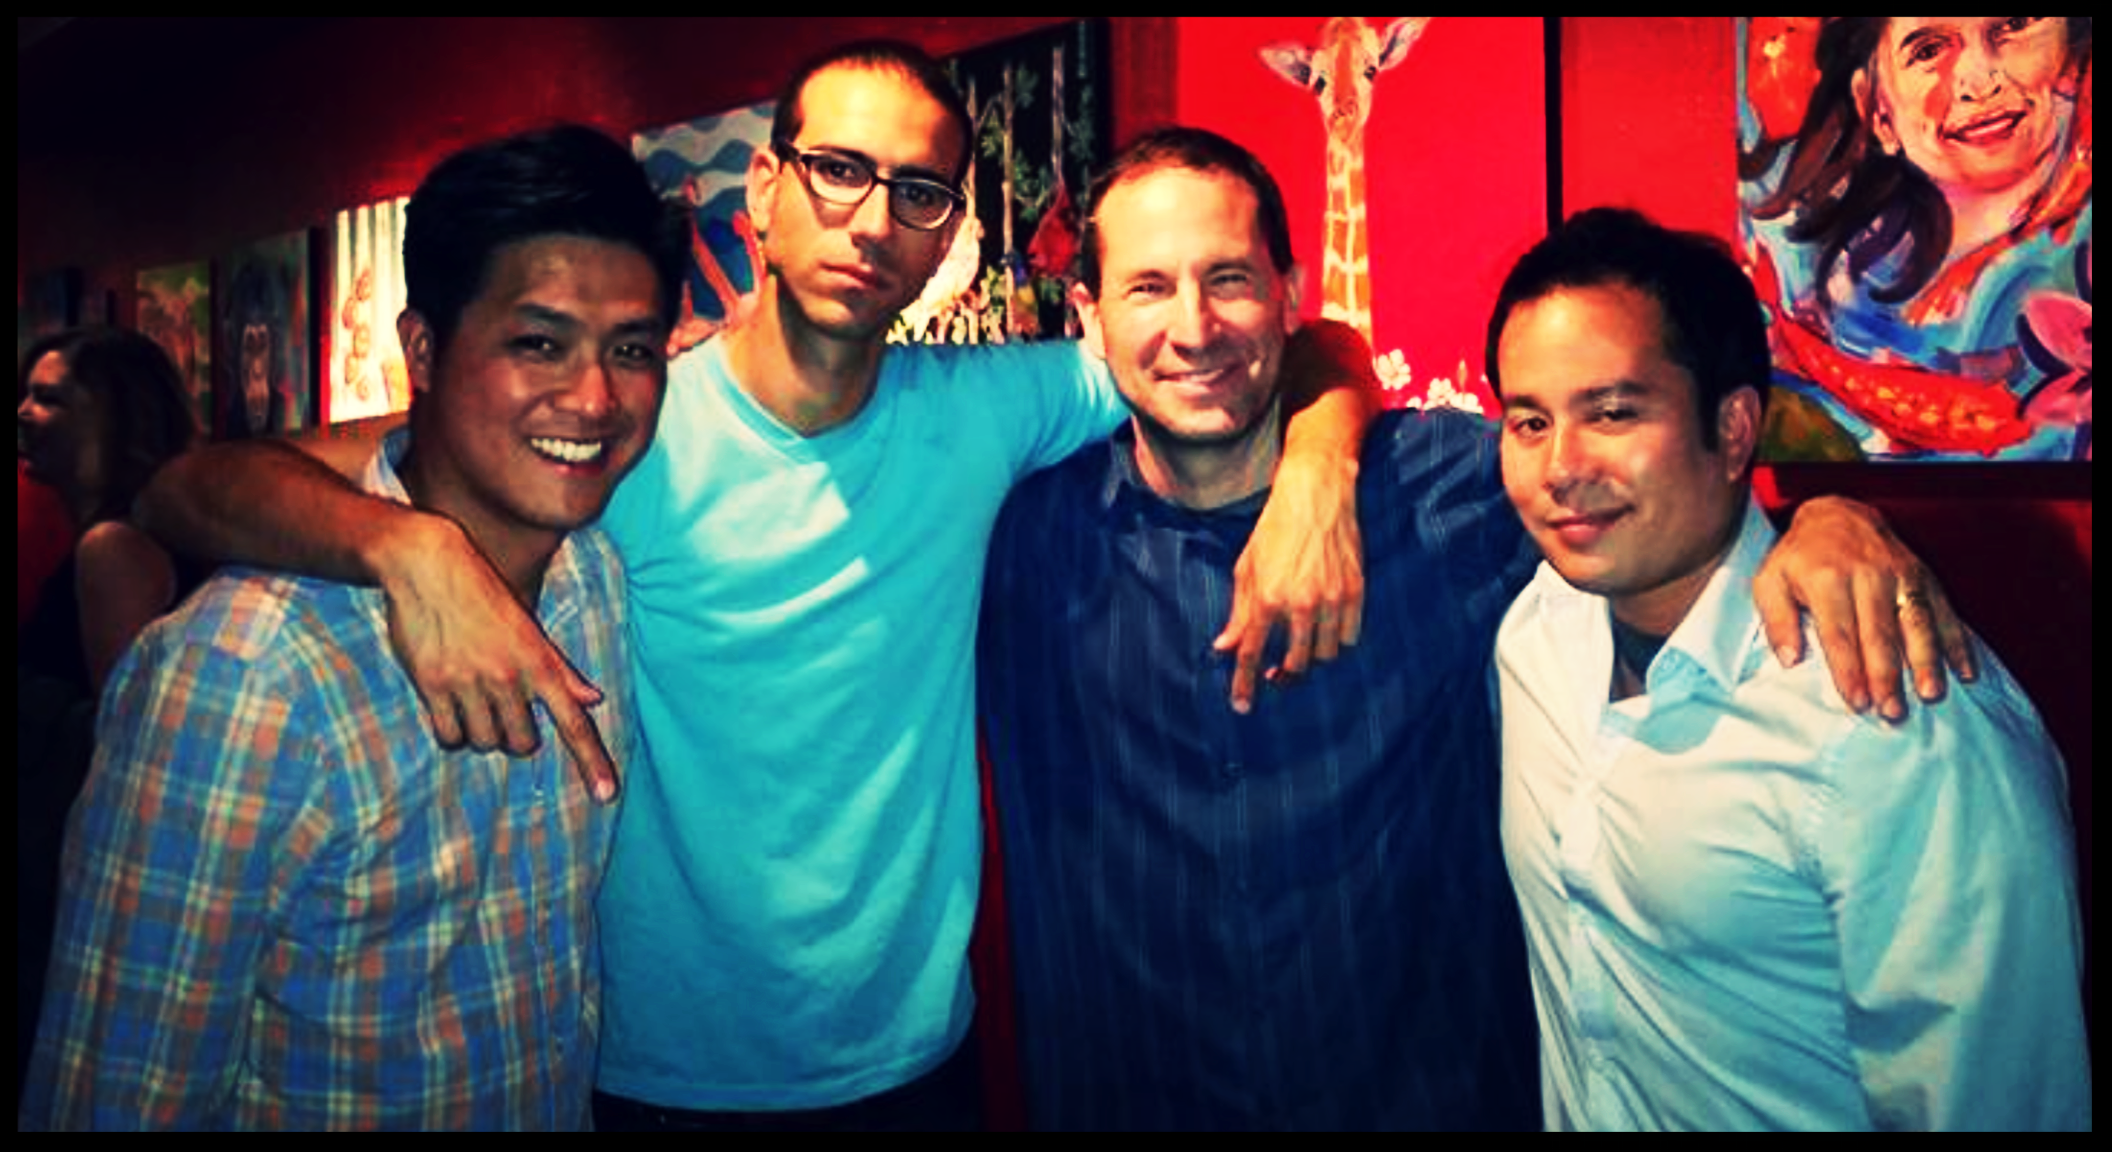 Red Rock Coffee.  Mountain View, CA.  Kevin Wong, Nathan Habib, Jeff Applebaum, and Joe Nguyen.